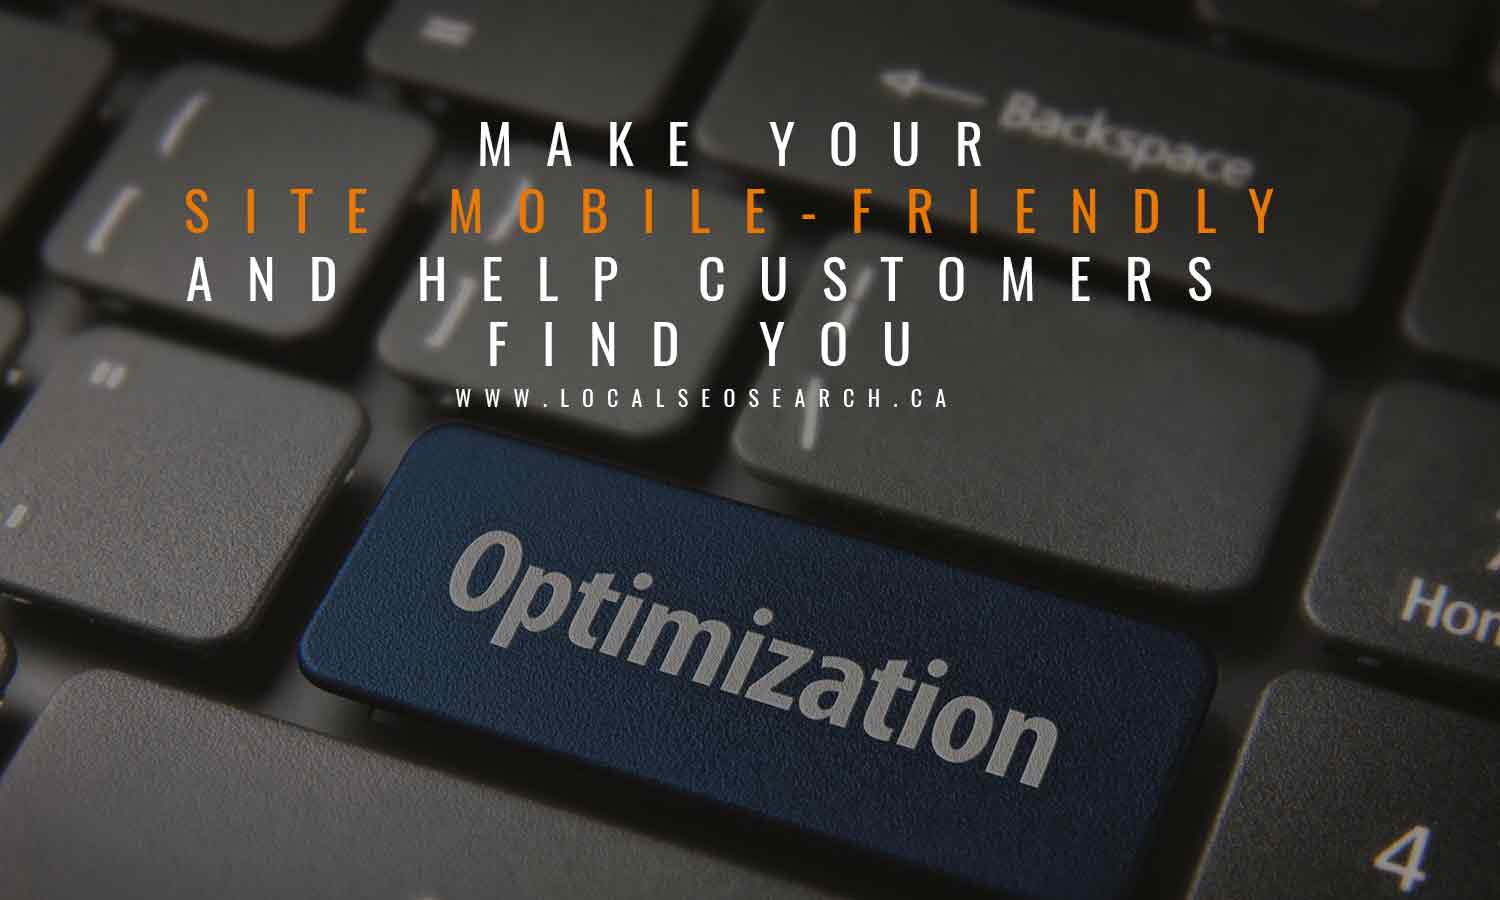 Make-your-site-mobile-friendly-and-help-customers-find-you